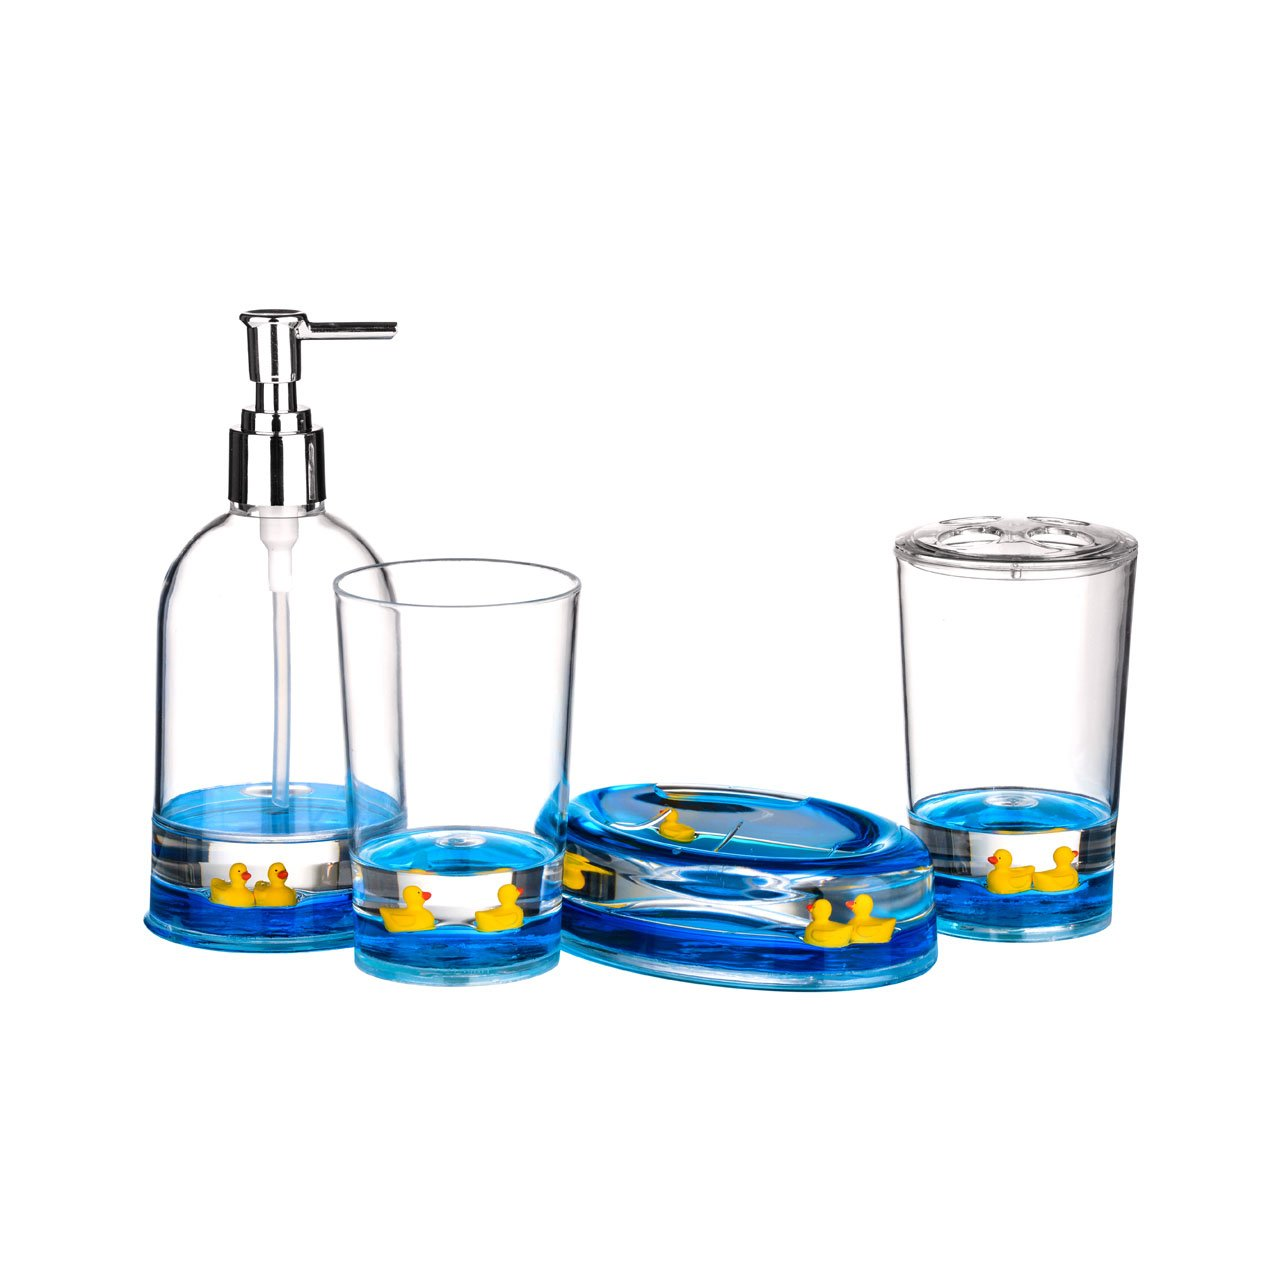 4pc Bathroom Accessories Set Floating Ducks Design Acrylic Finish:  Amazon.co.uk: Kitchen U0026 Home